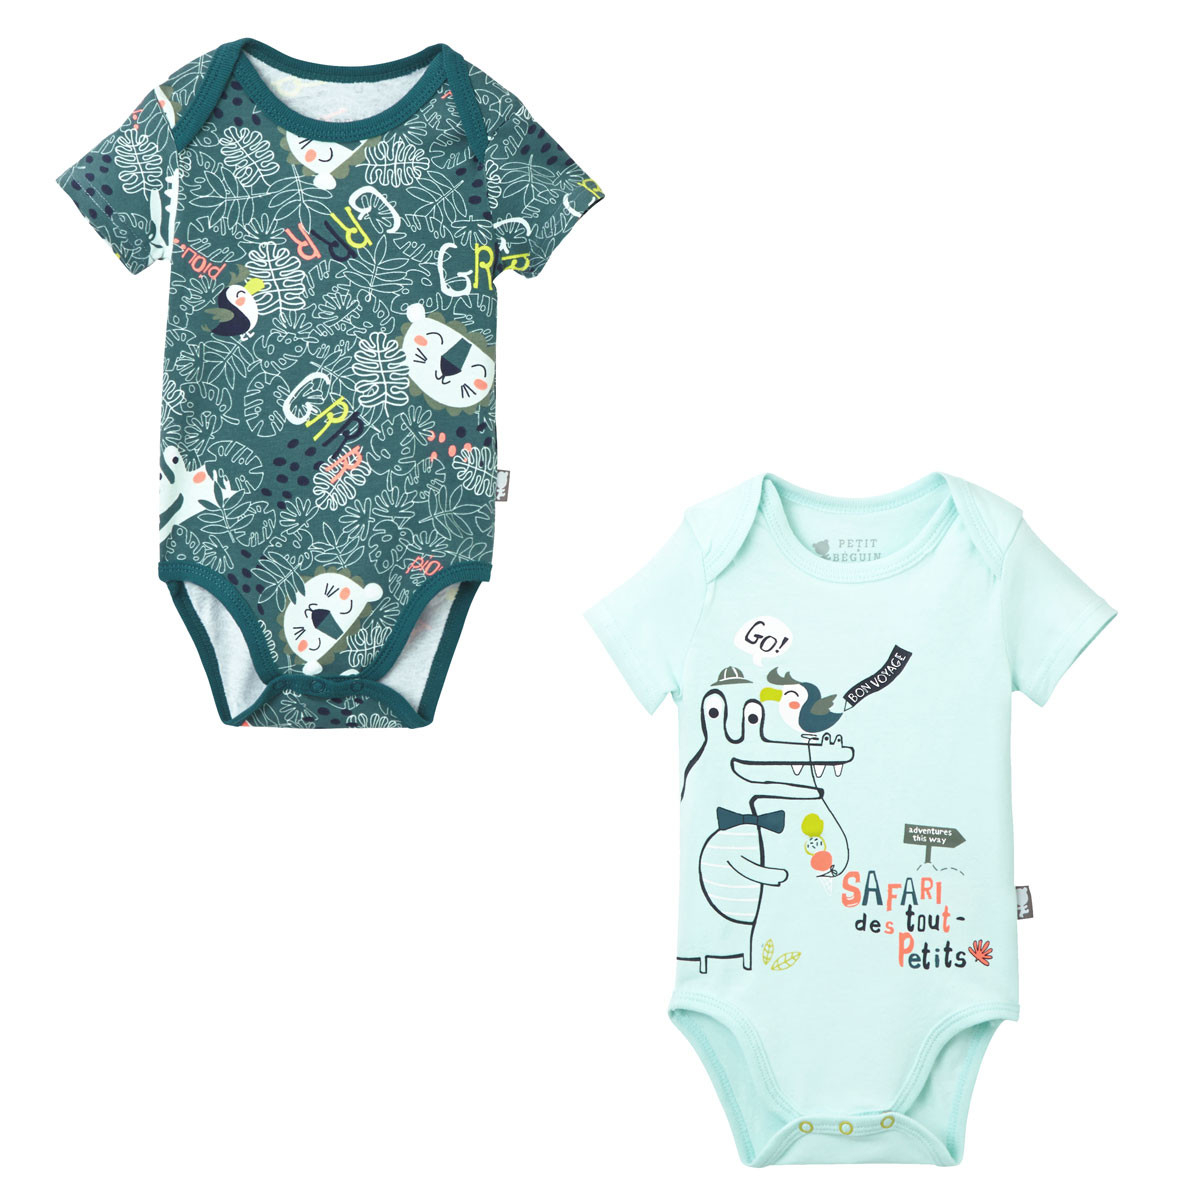 Lot de 2 bodies manches courtes bébé garçon Camoujungle